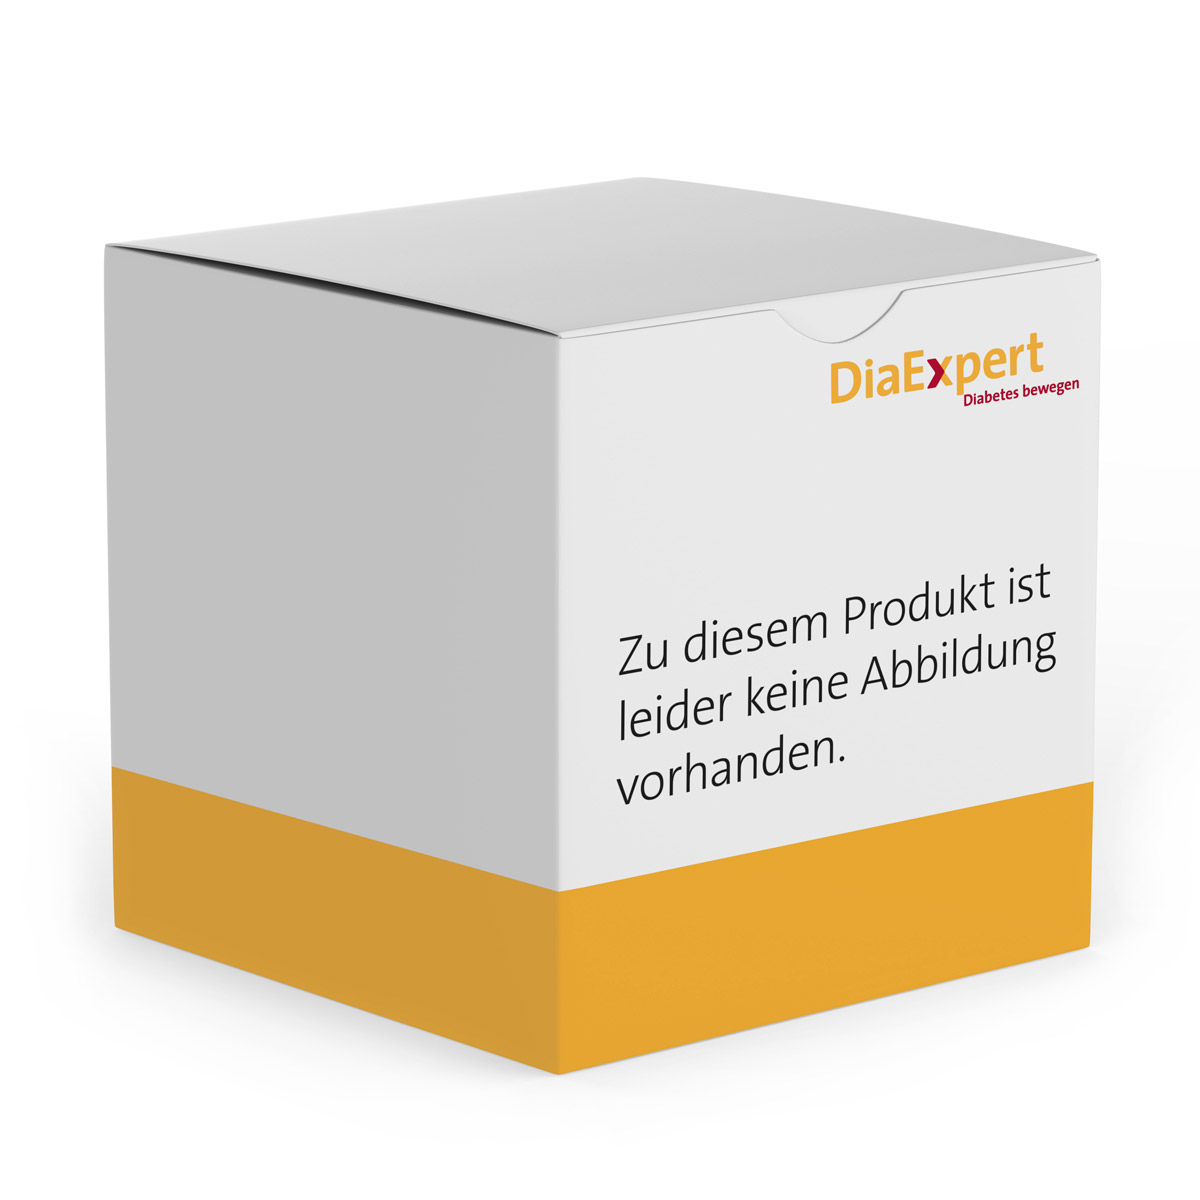 Contour Next Link 2.4 mg/dL für MiniMed 640G